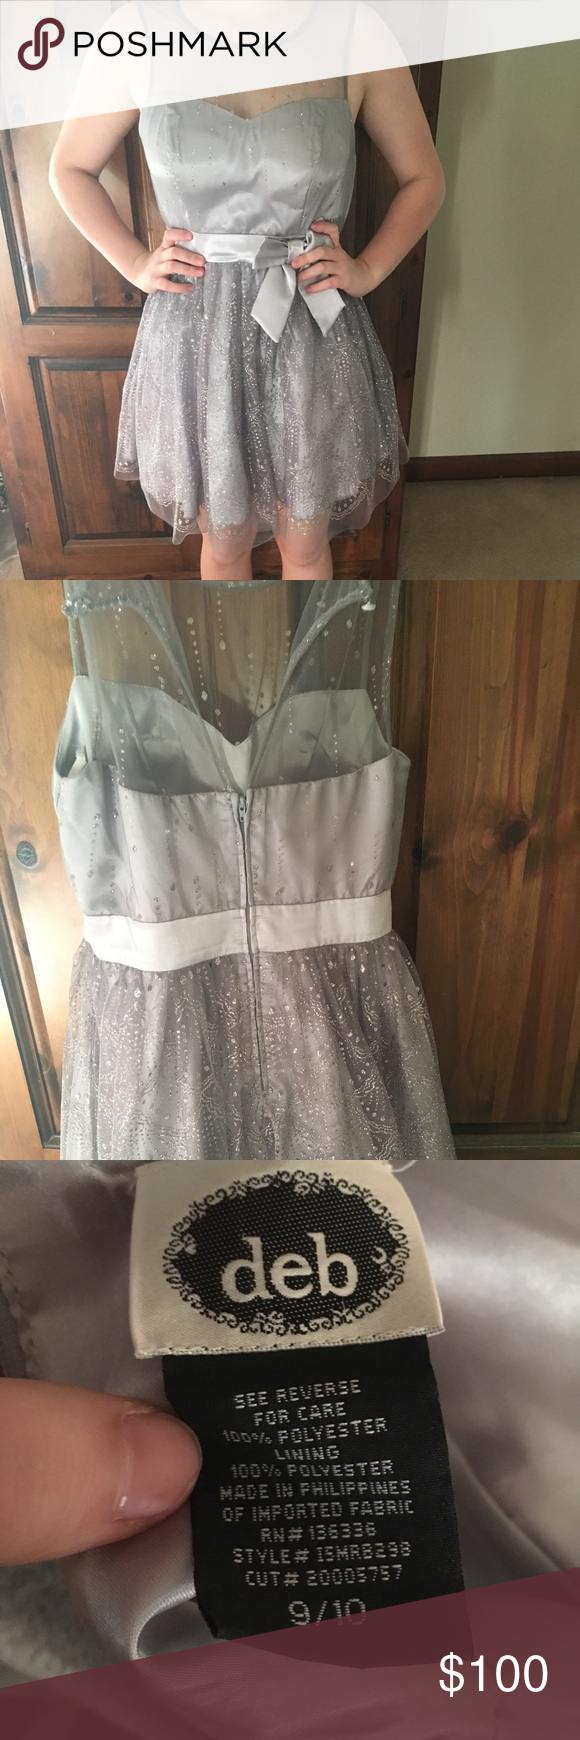 Silver dress can be used for any event